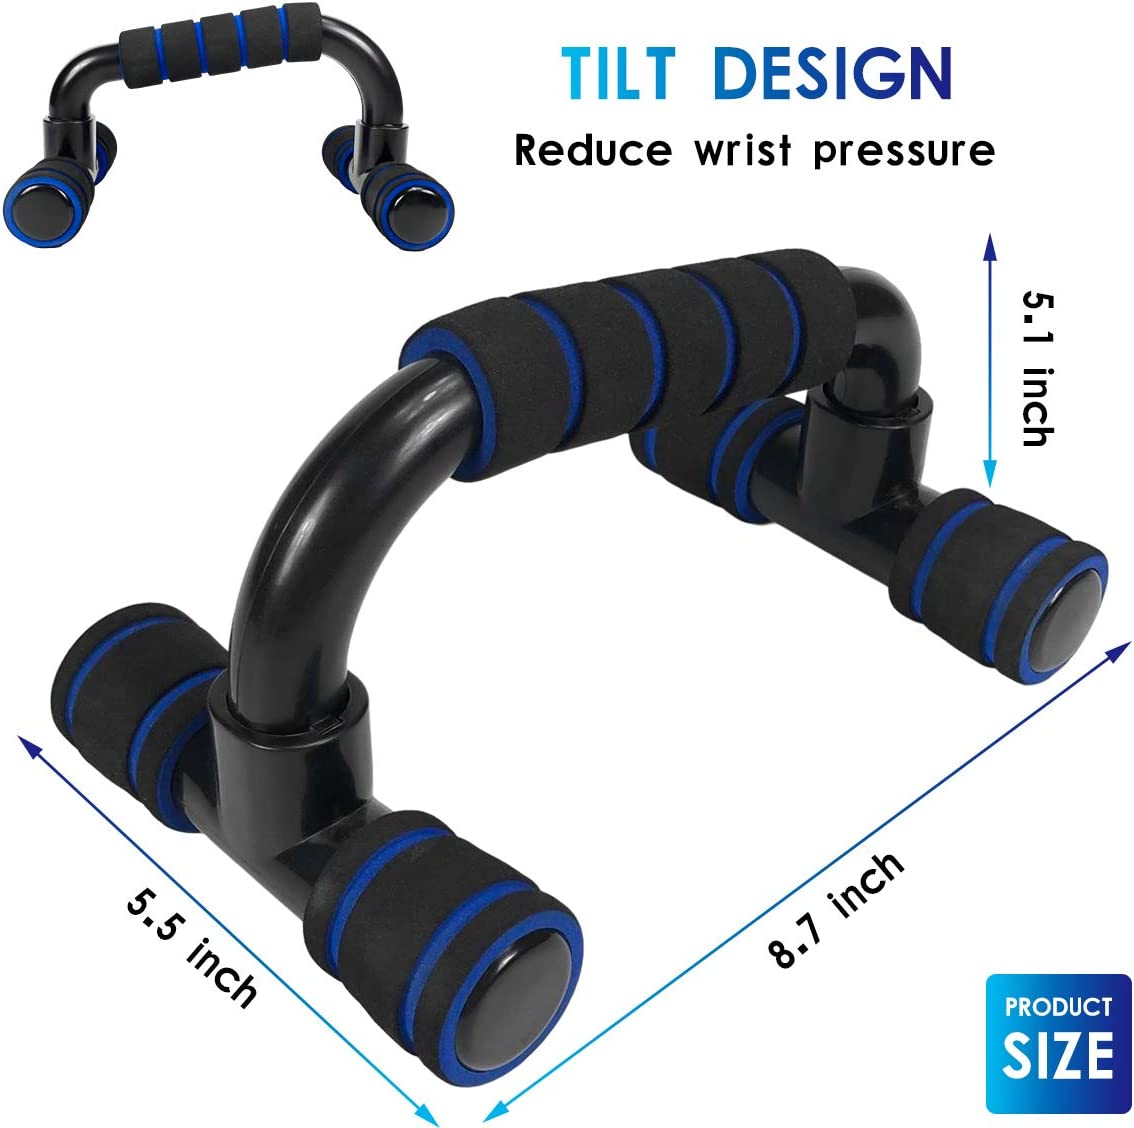 Jorohiker Push up Bars Pushup Handle Pushup Stands with Cushioned Foam Grip Muscle Strength Training Workout Stands for Floor Push-up Bracket for Men Home Gym Exercise